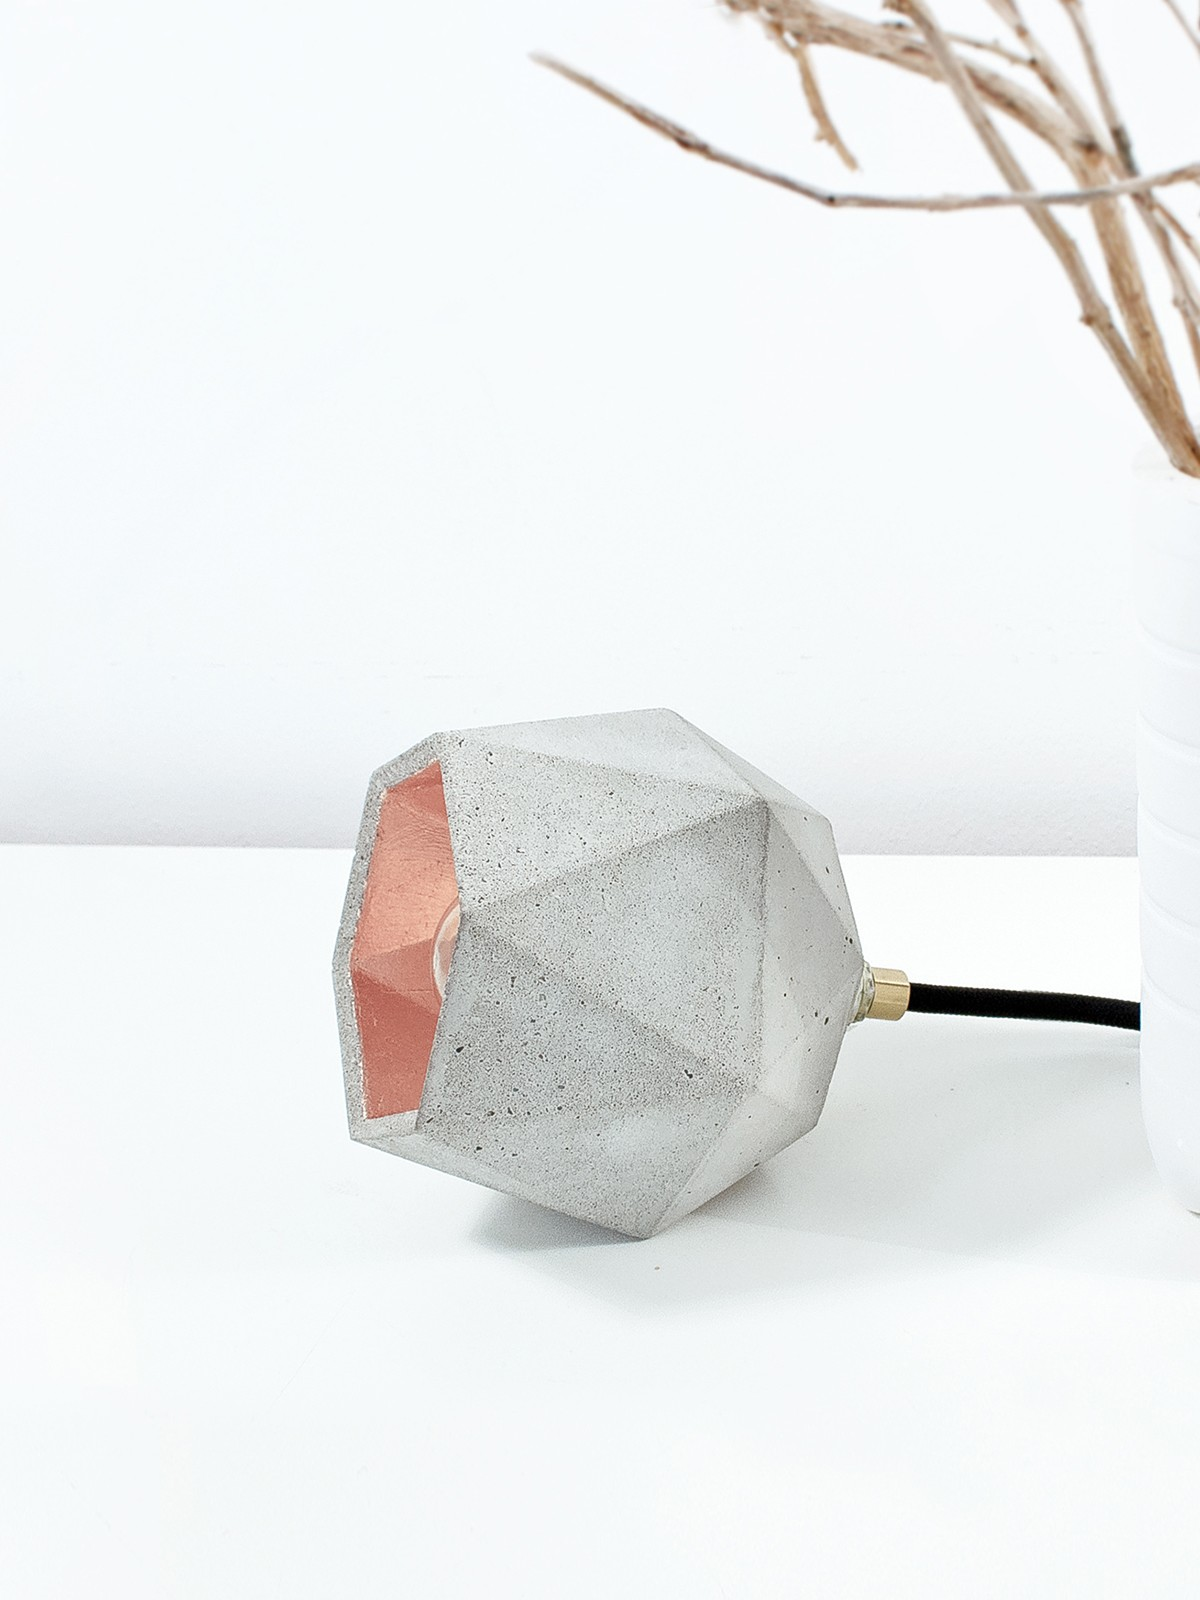 [T2] Up Floor Light Triangle Light Grey Concrete, Copper Plating